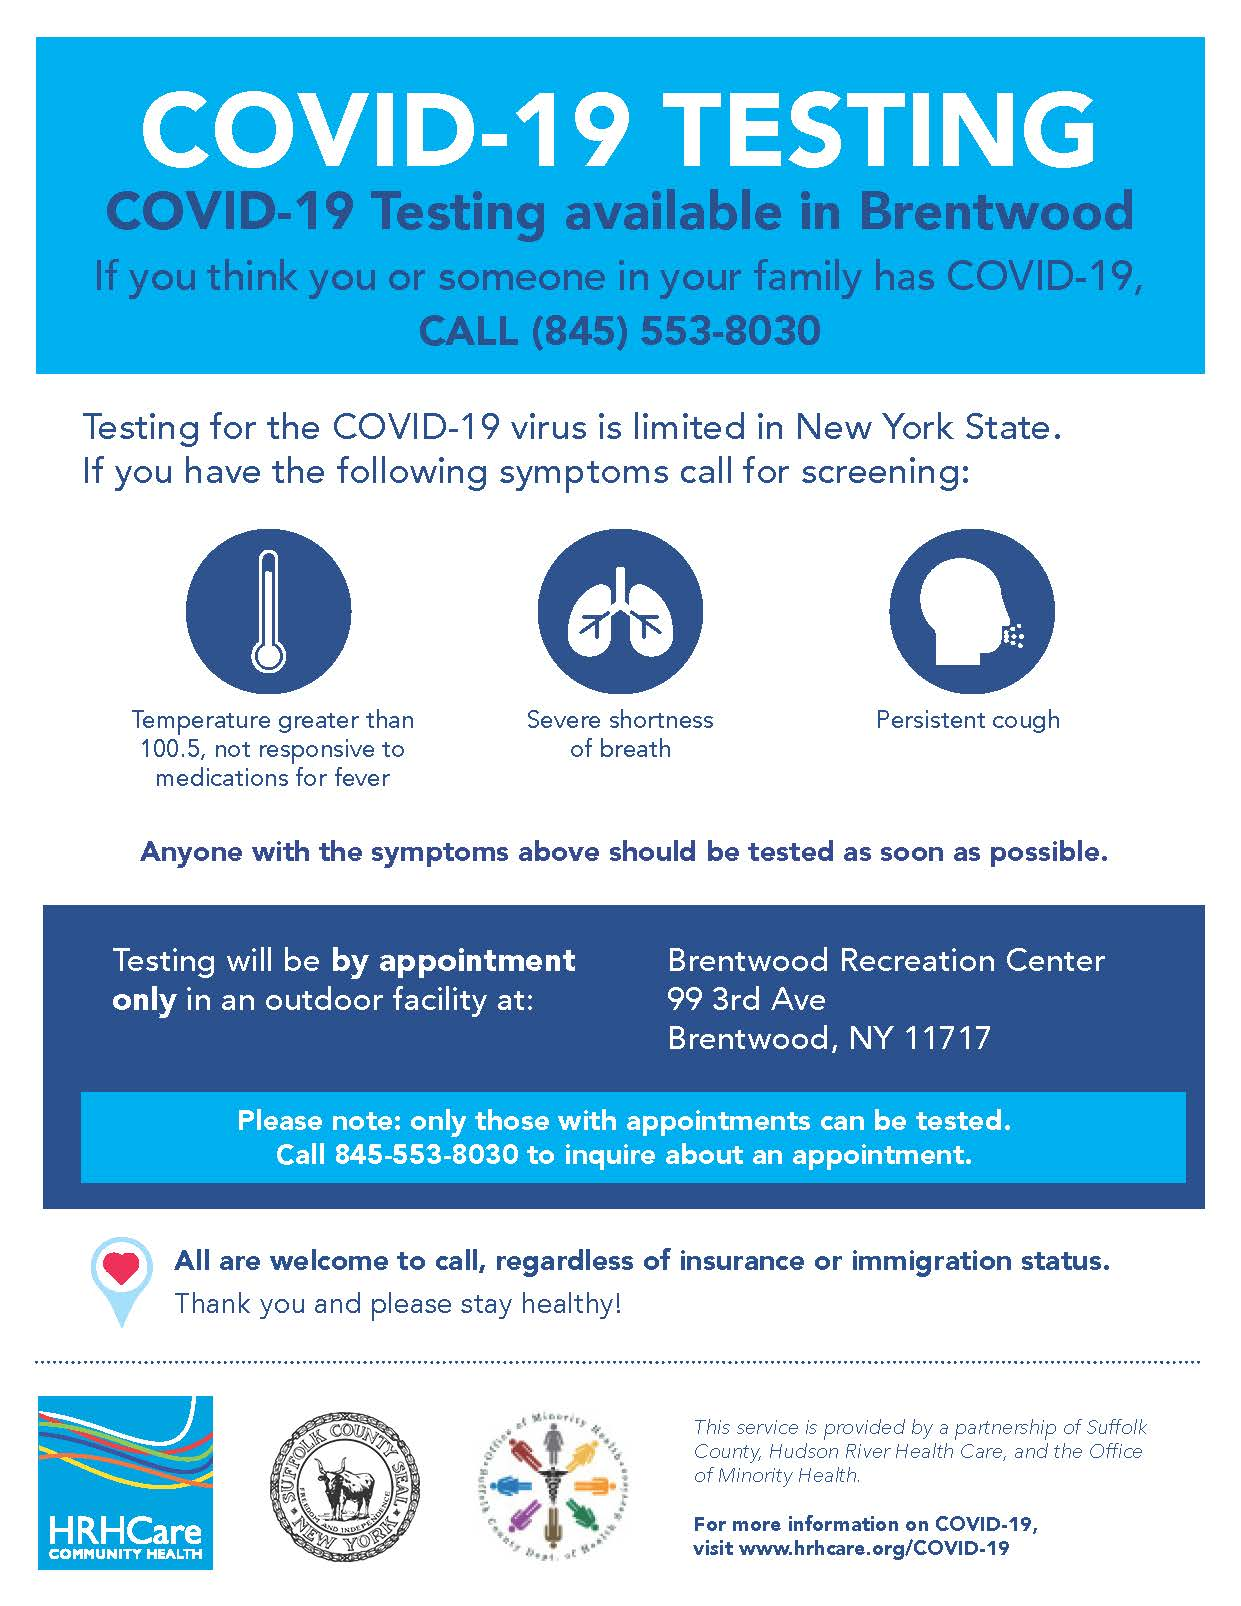 flyer announcing Brentwood testing site for COVID-19 at Brentwood Rec Center, 99 3rd Avenue, call 845-553-8030 to inquire about appointments